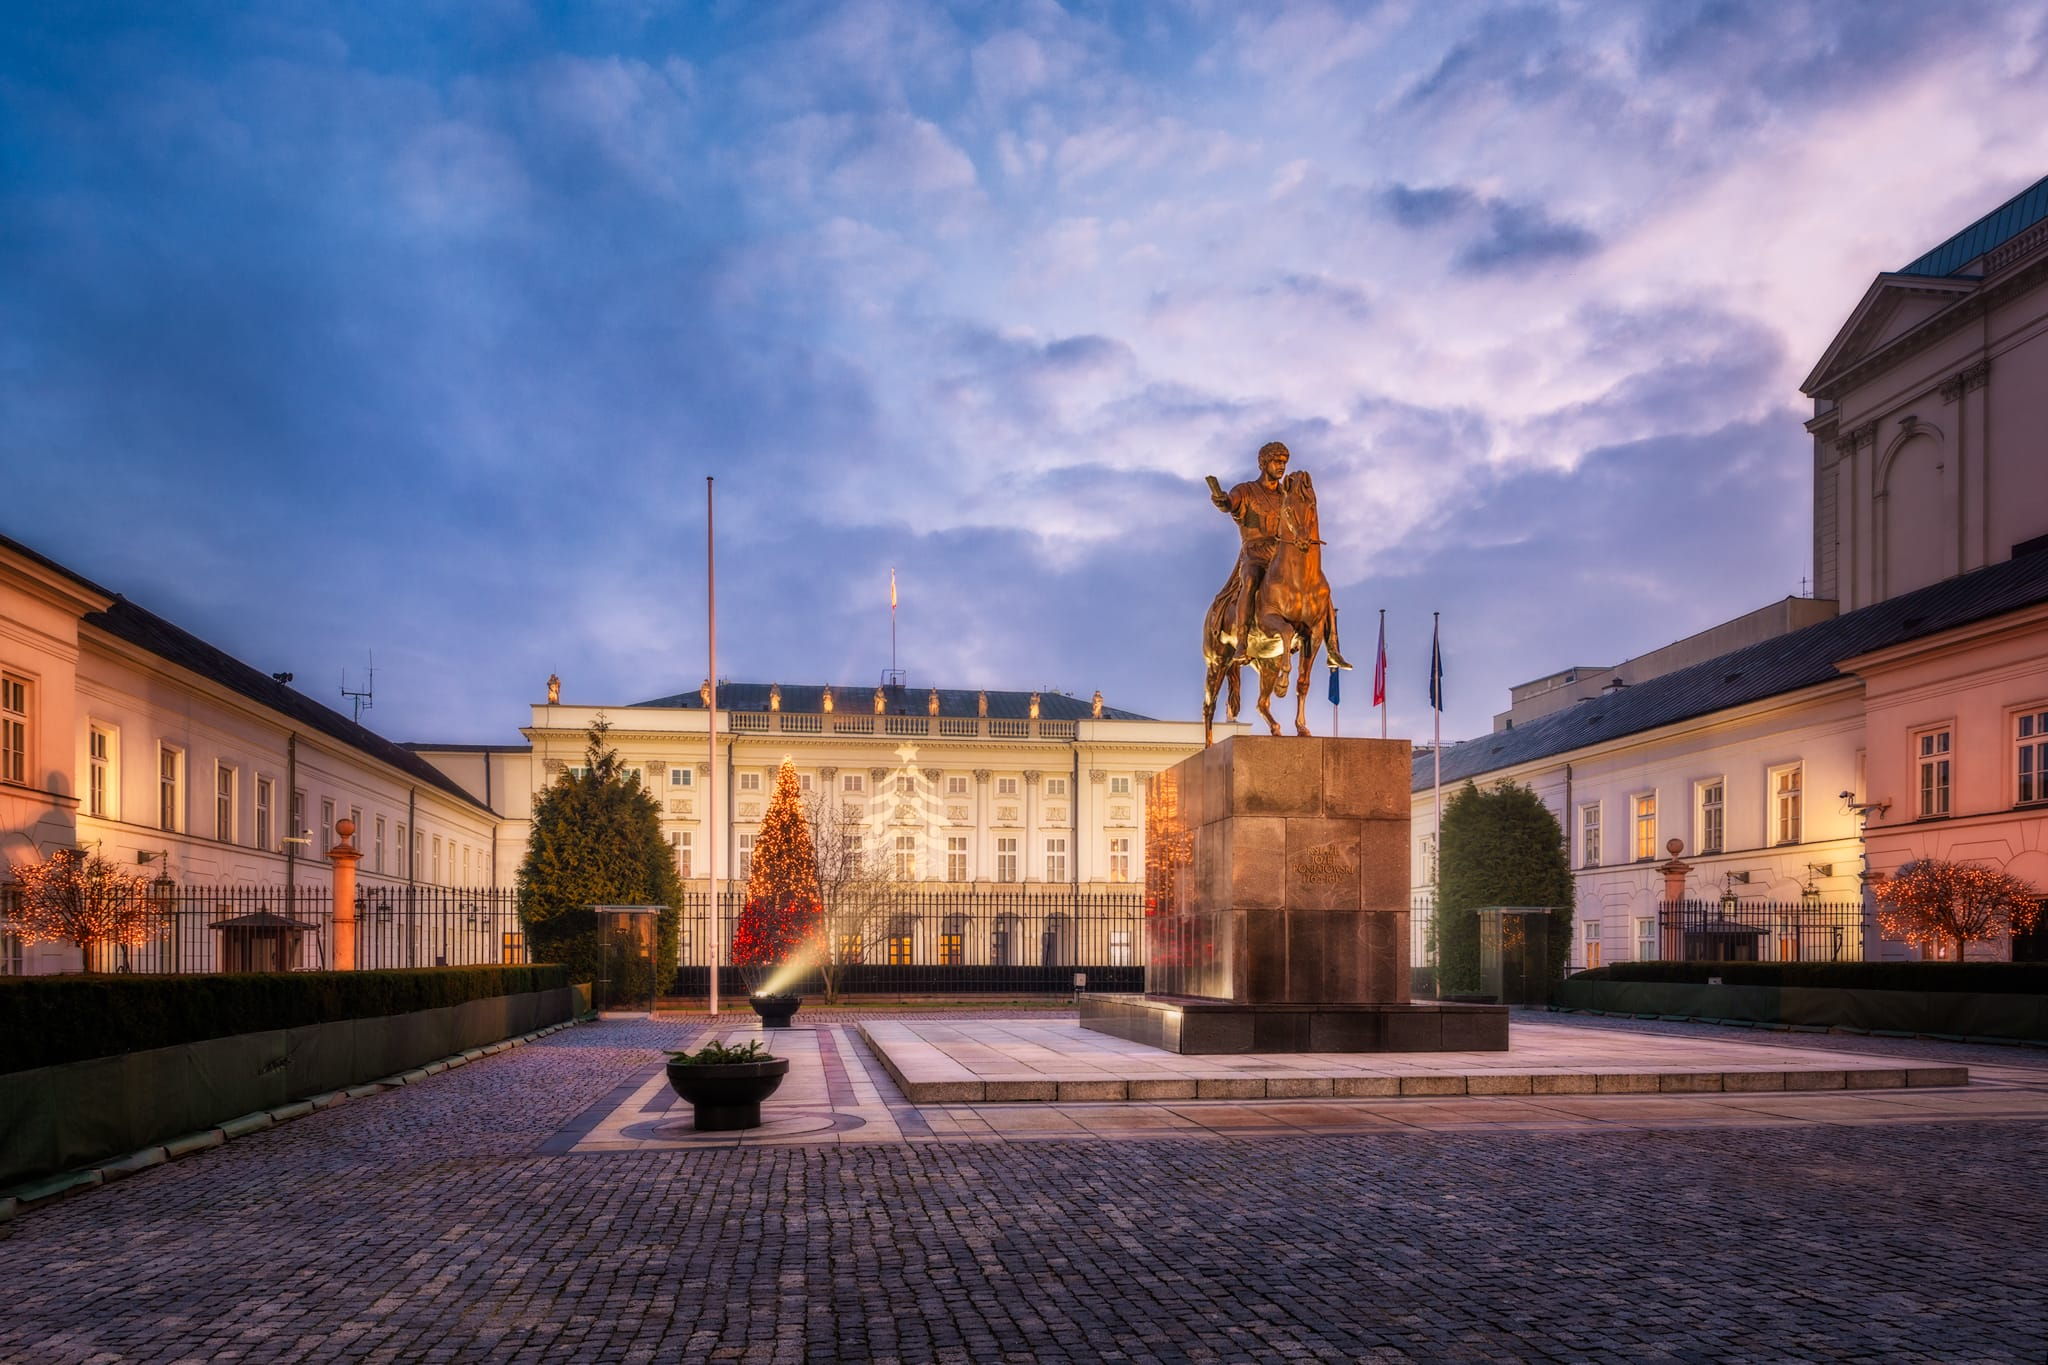 Presidential Palace in the center of Warsaw, capital of Poland